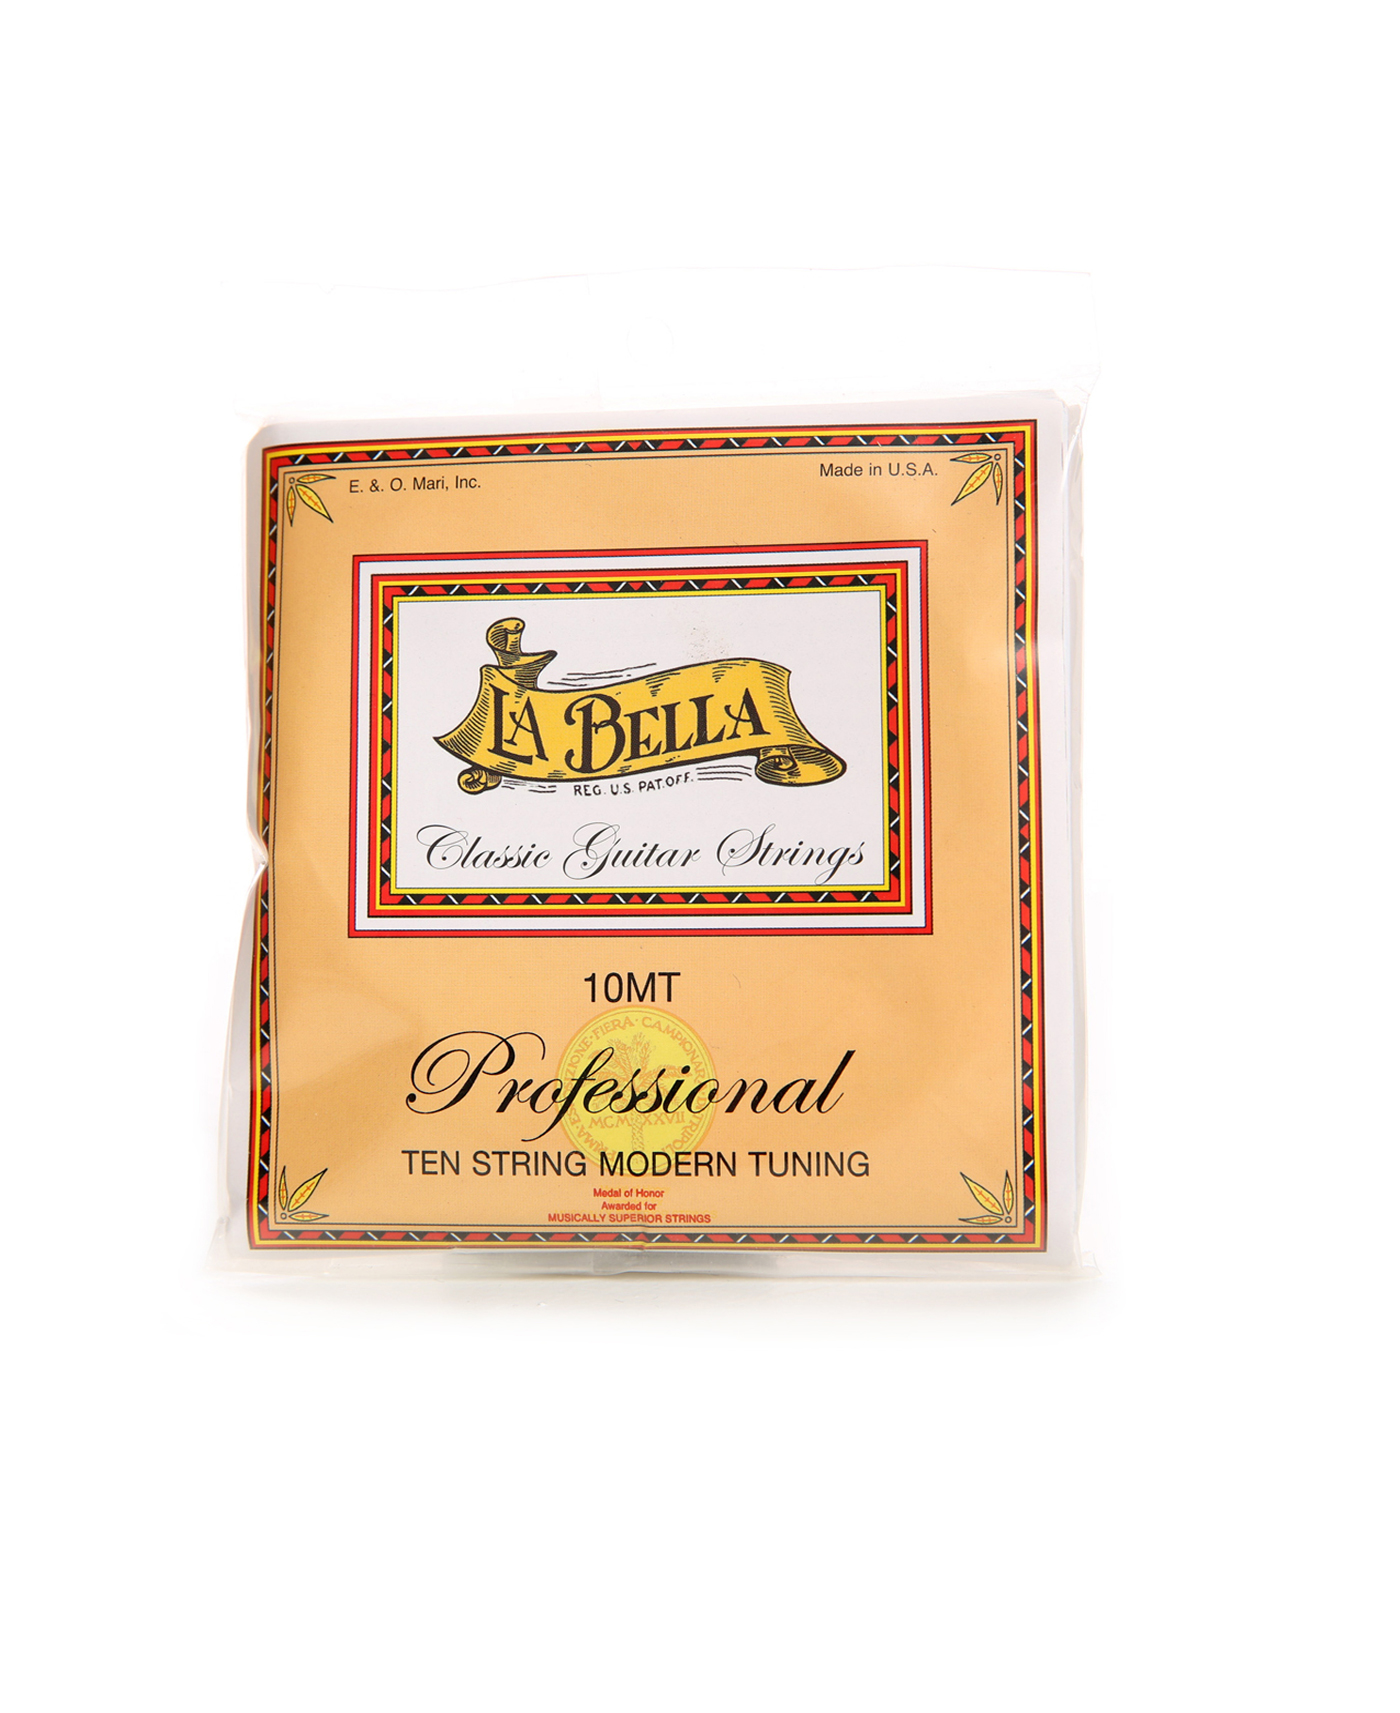 Set of 10 guitar strings La Bella 10MT